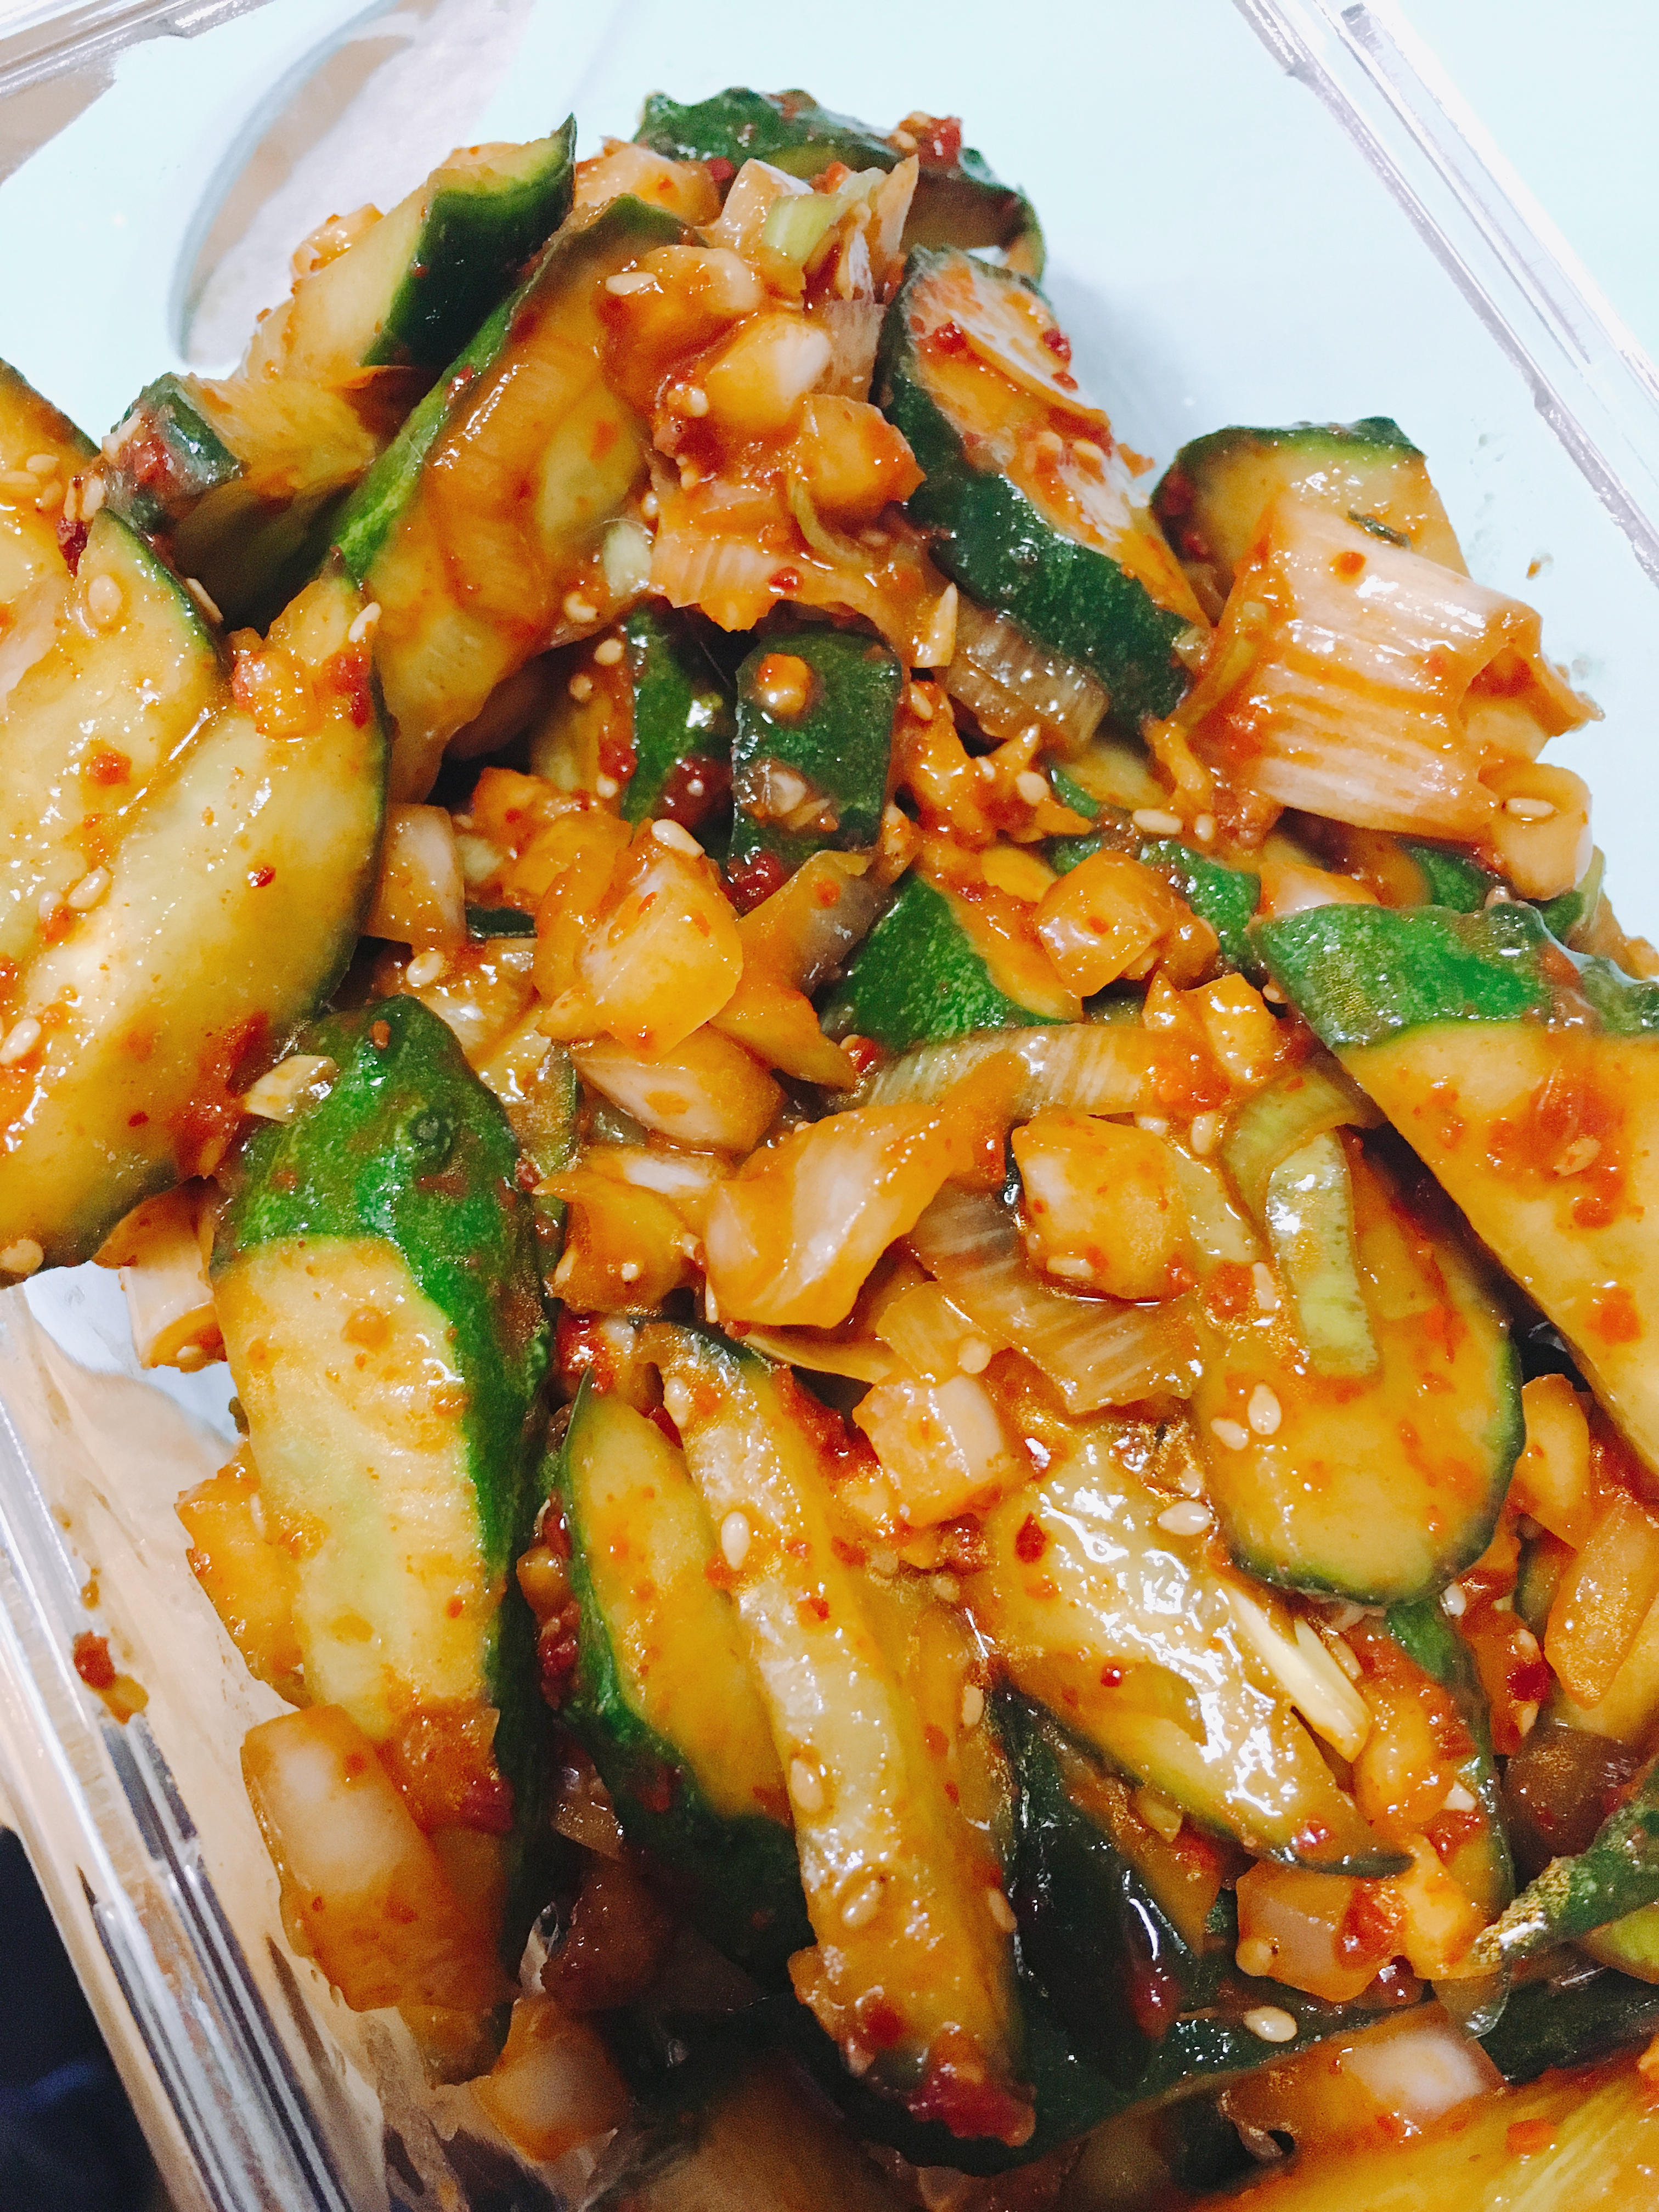 Spicy cucumber side dish recipe maangchi see full size image forumfinder Choice Image